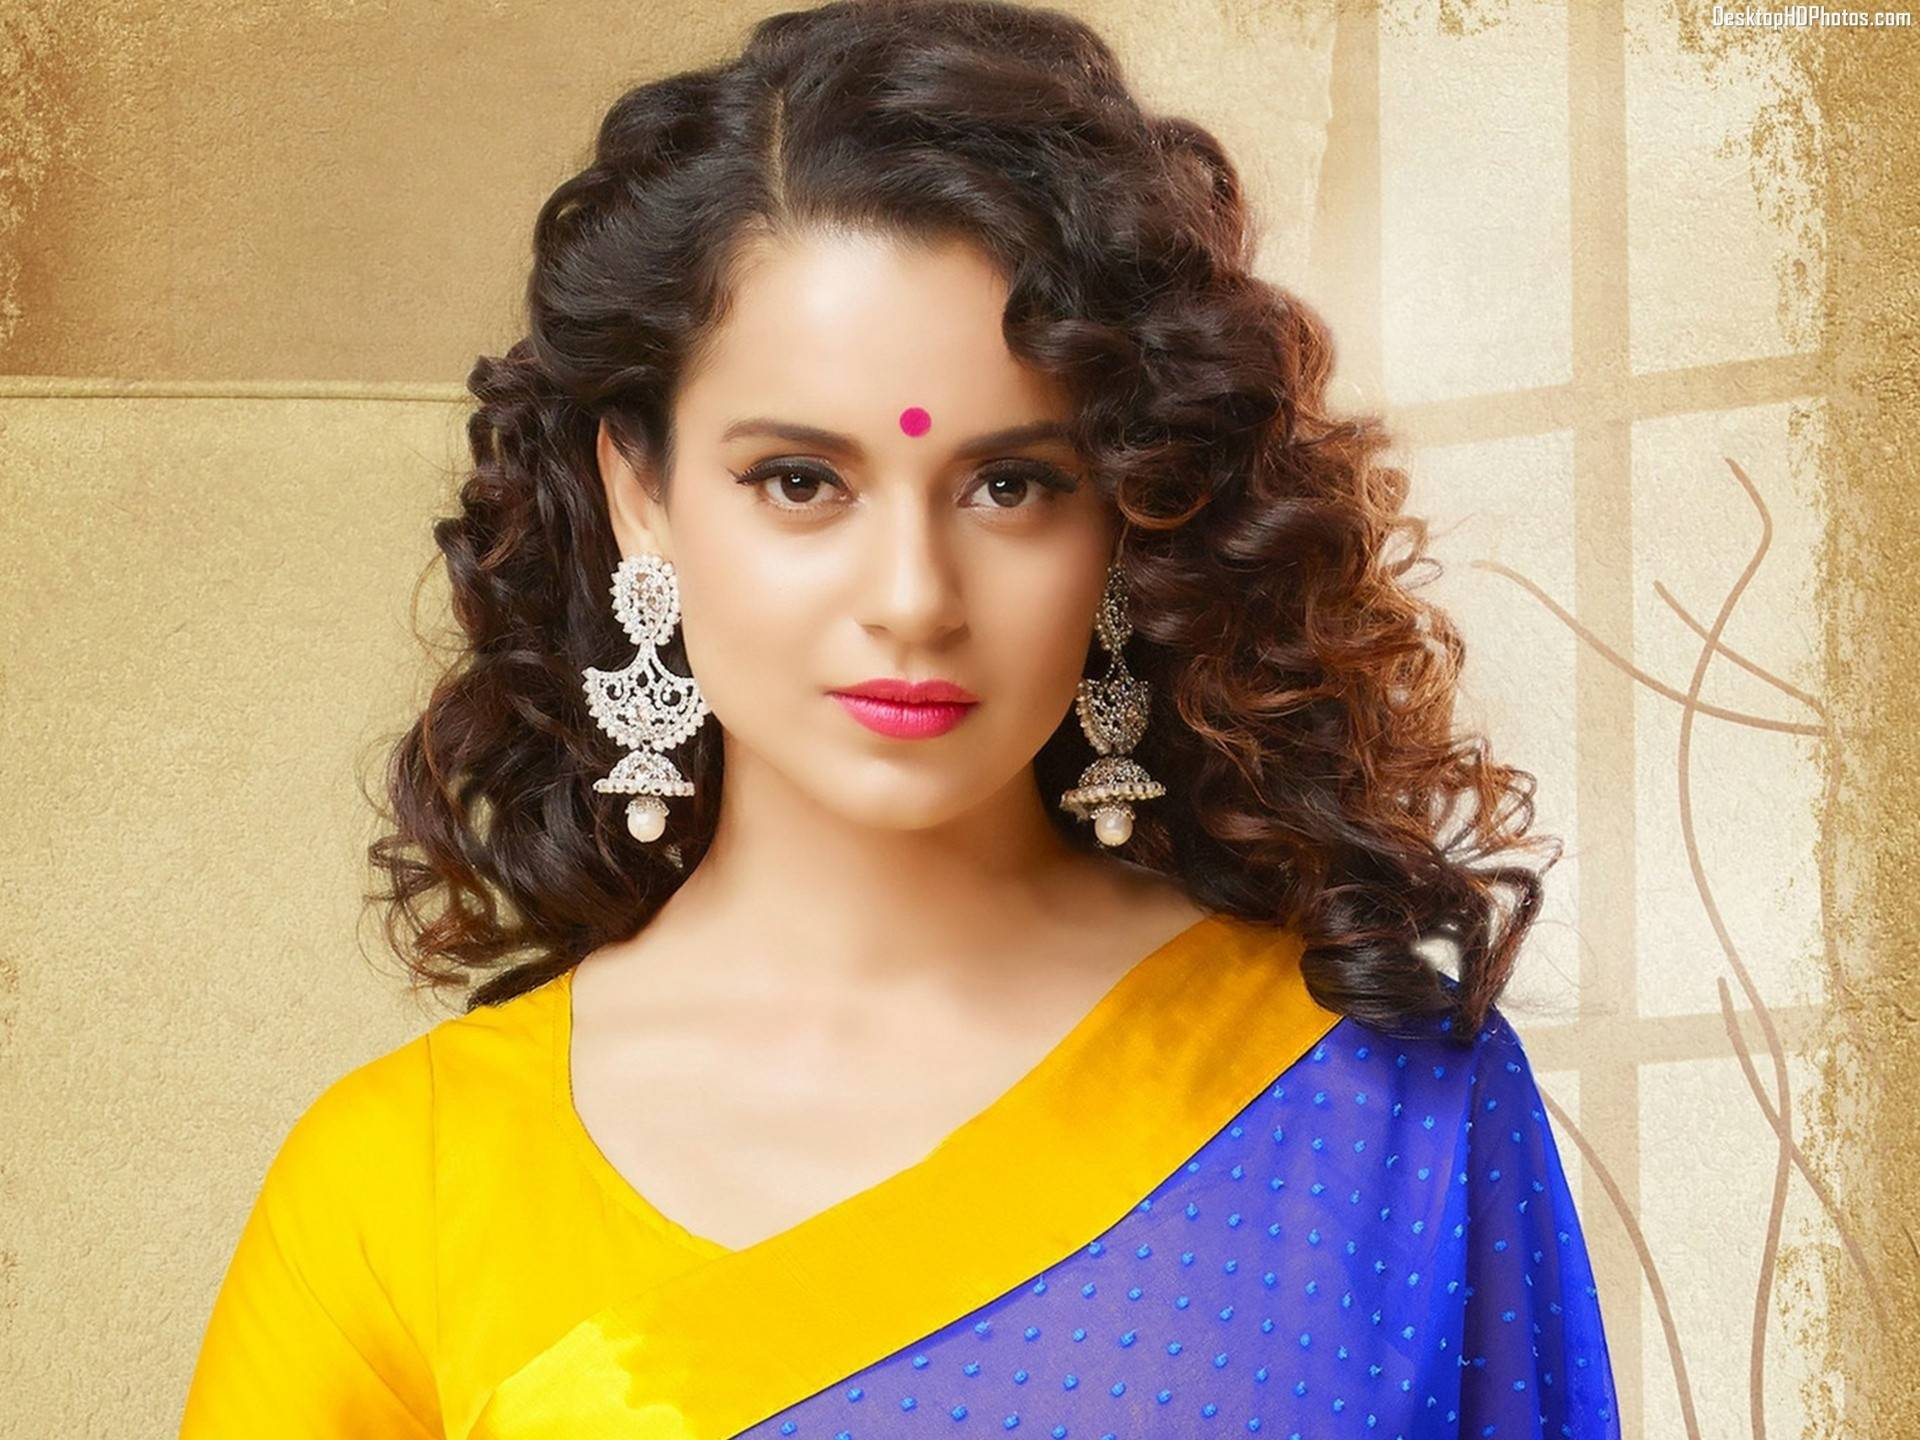 Happy Birthday to the 'London thumakda girl' Kangana Ranaut!